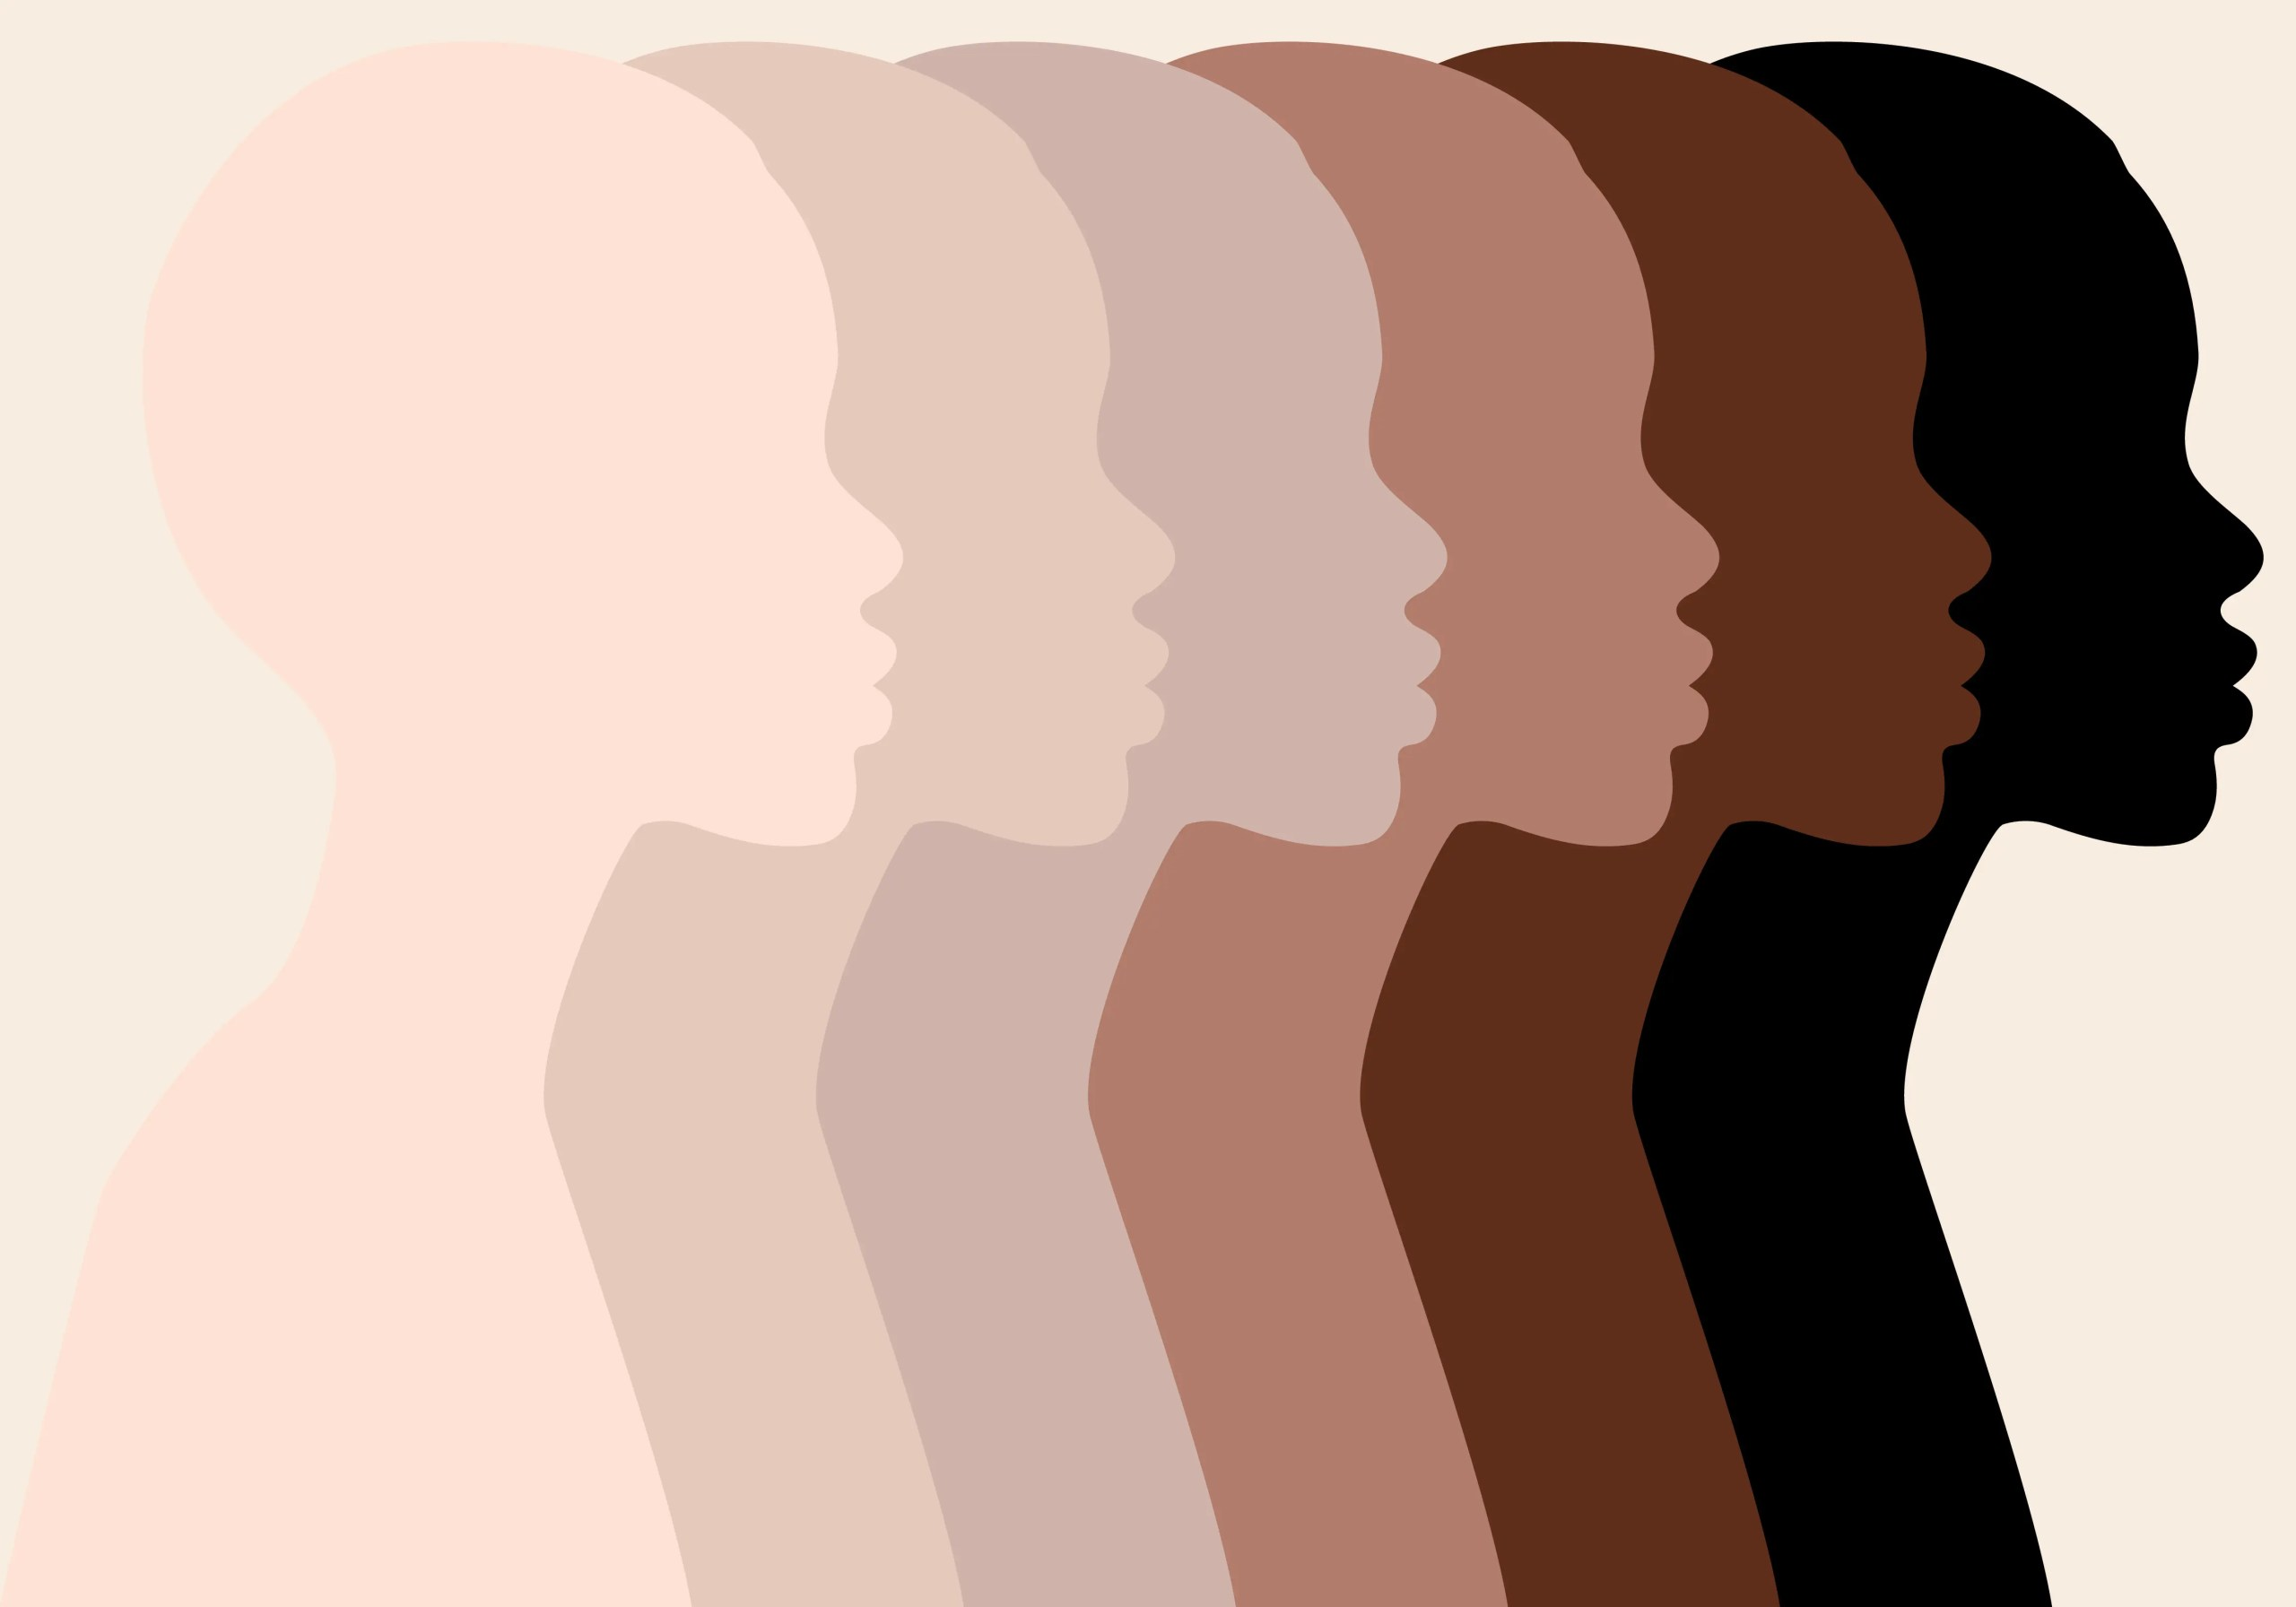 Crash Course on Colorism: The Damage of 'Light is Right'